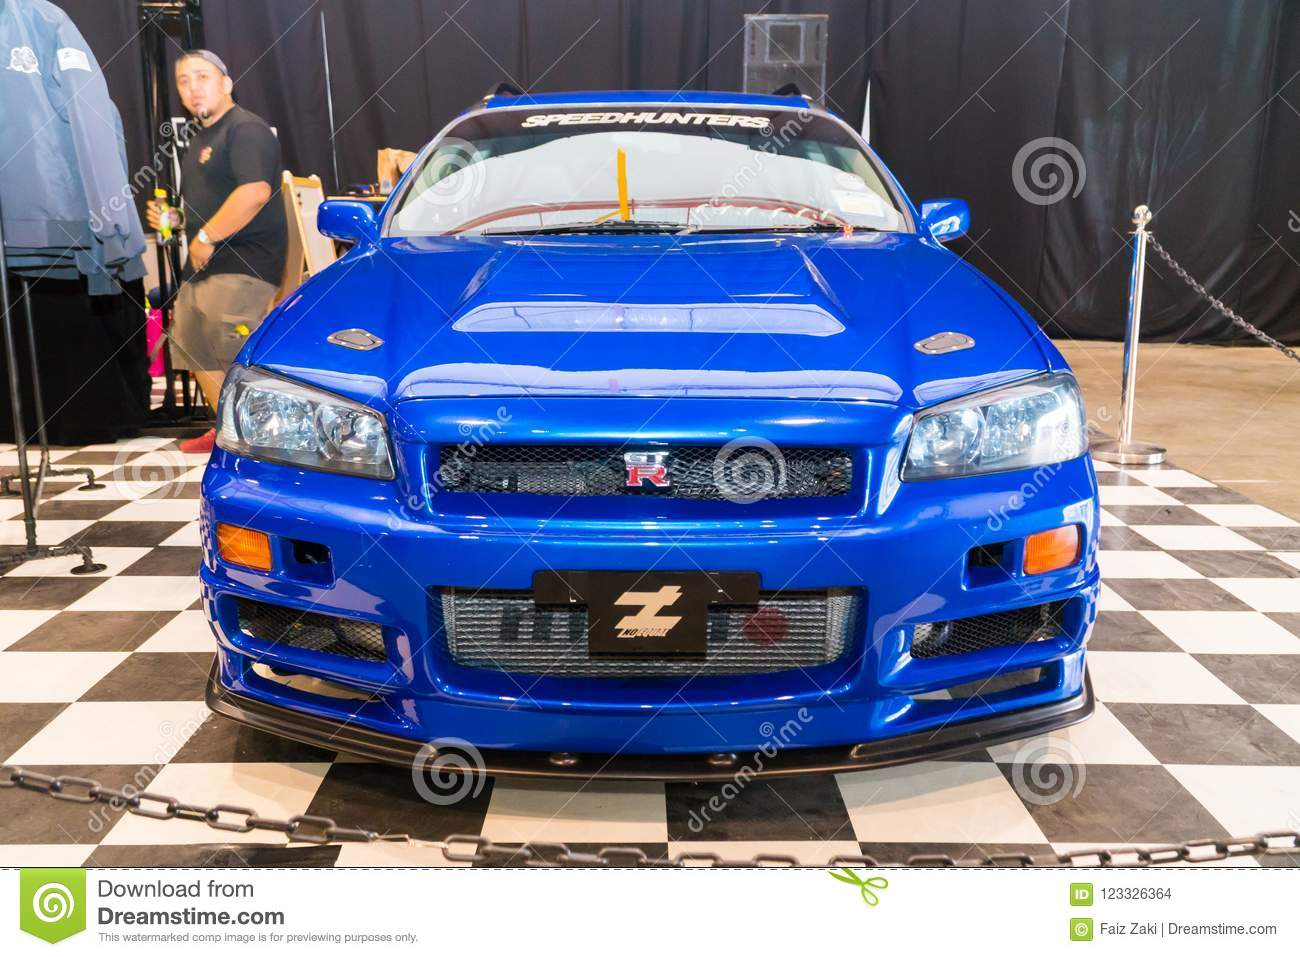 Nissan Skyline R34 Stagea Editorial Stock Image Image Of Front 123326364